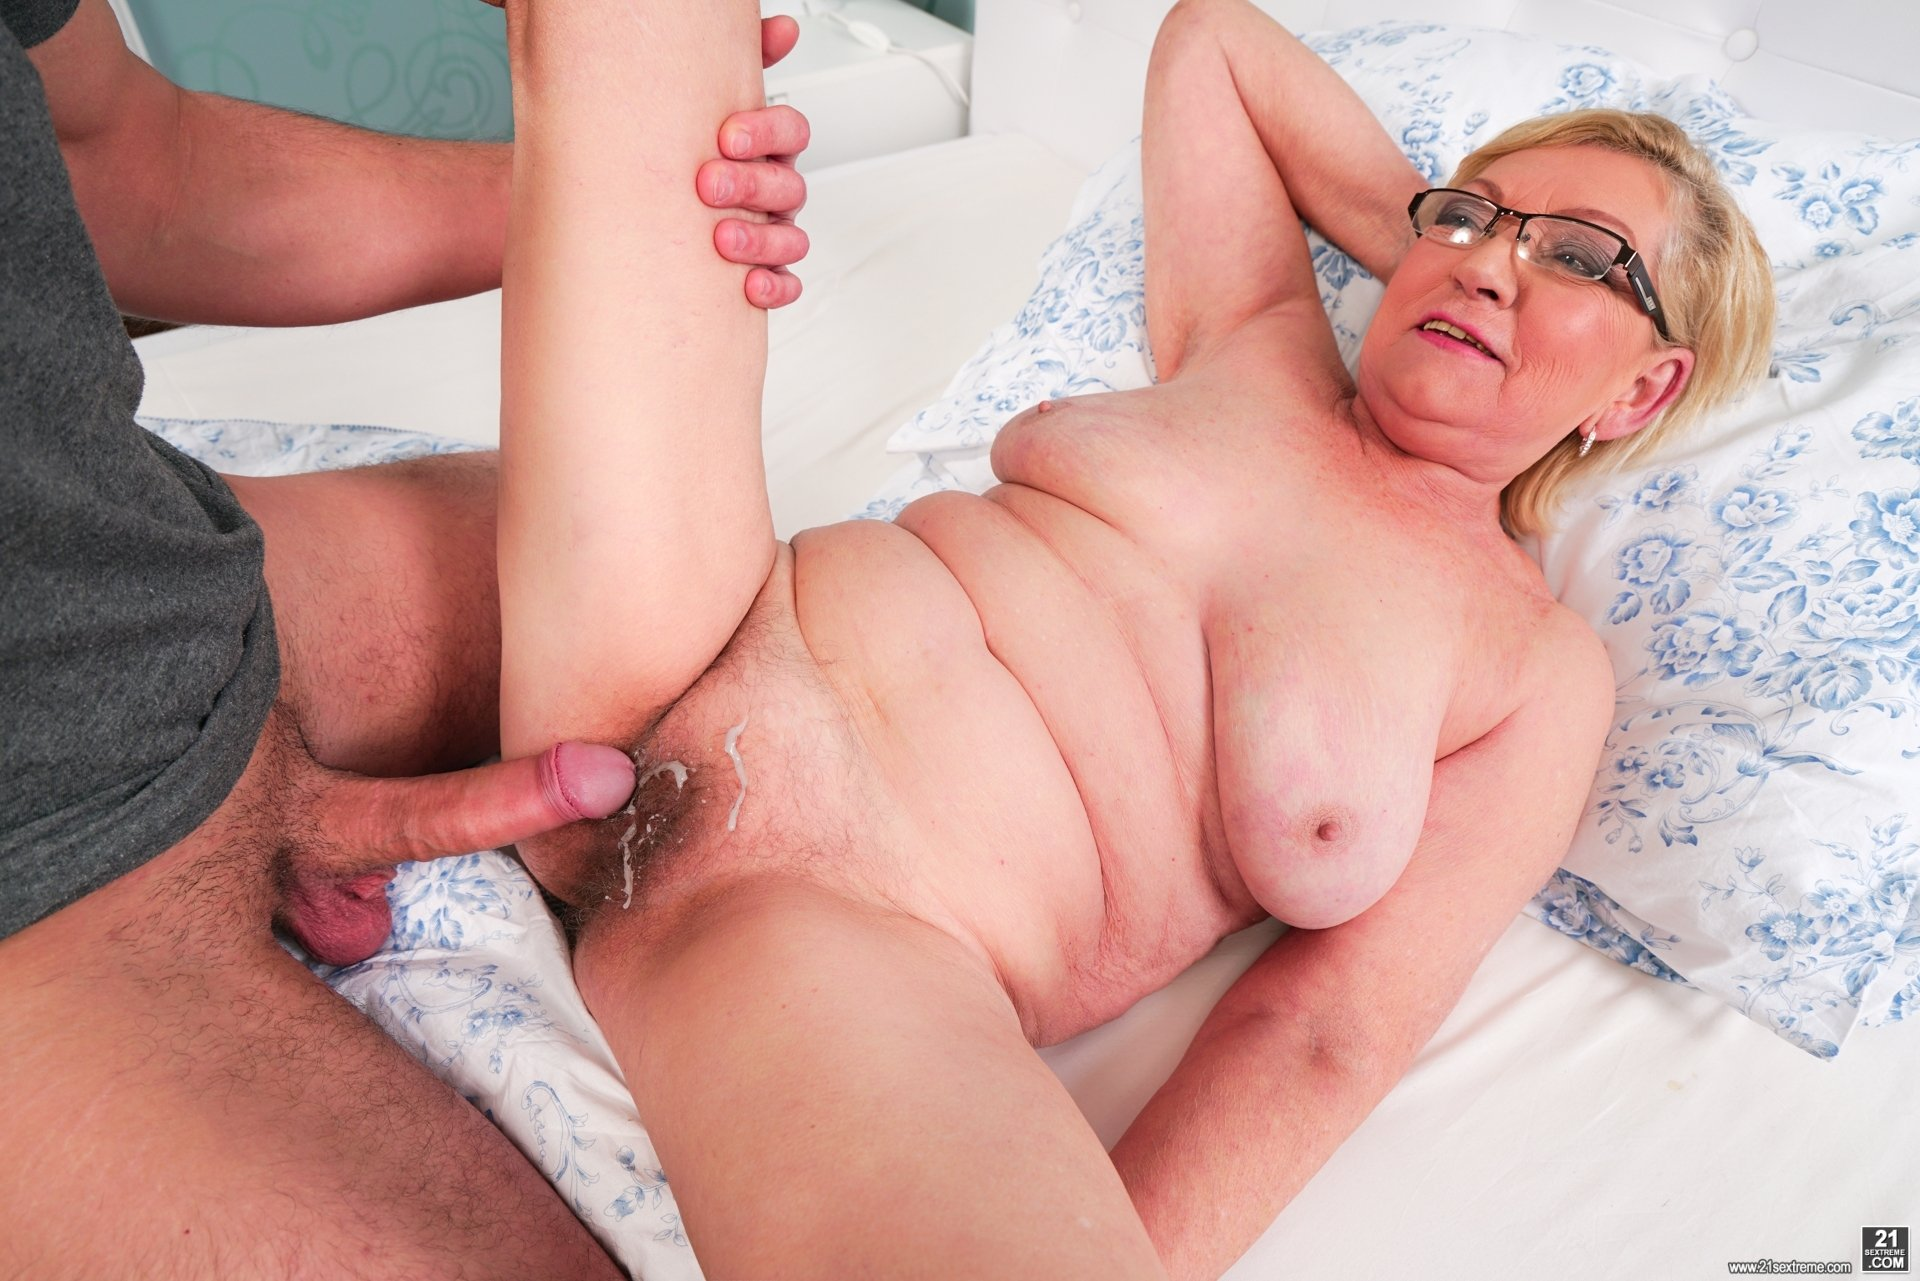 Blonde toying young cunt and riding old cock sexscene